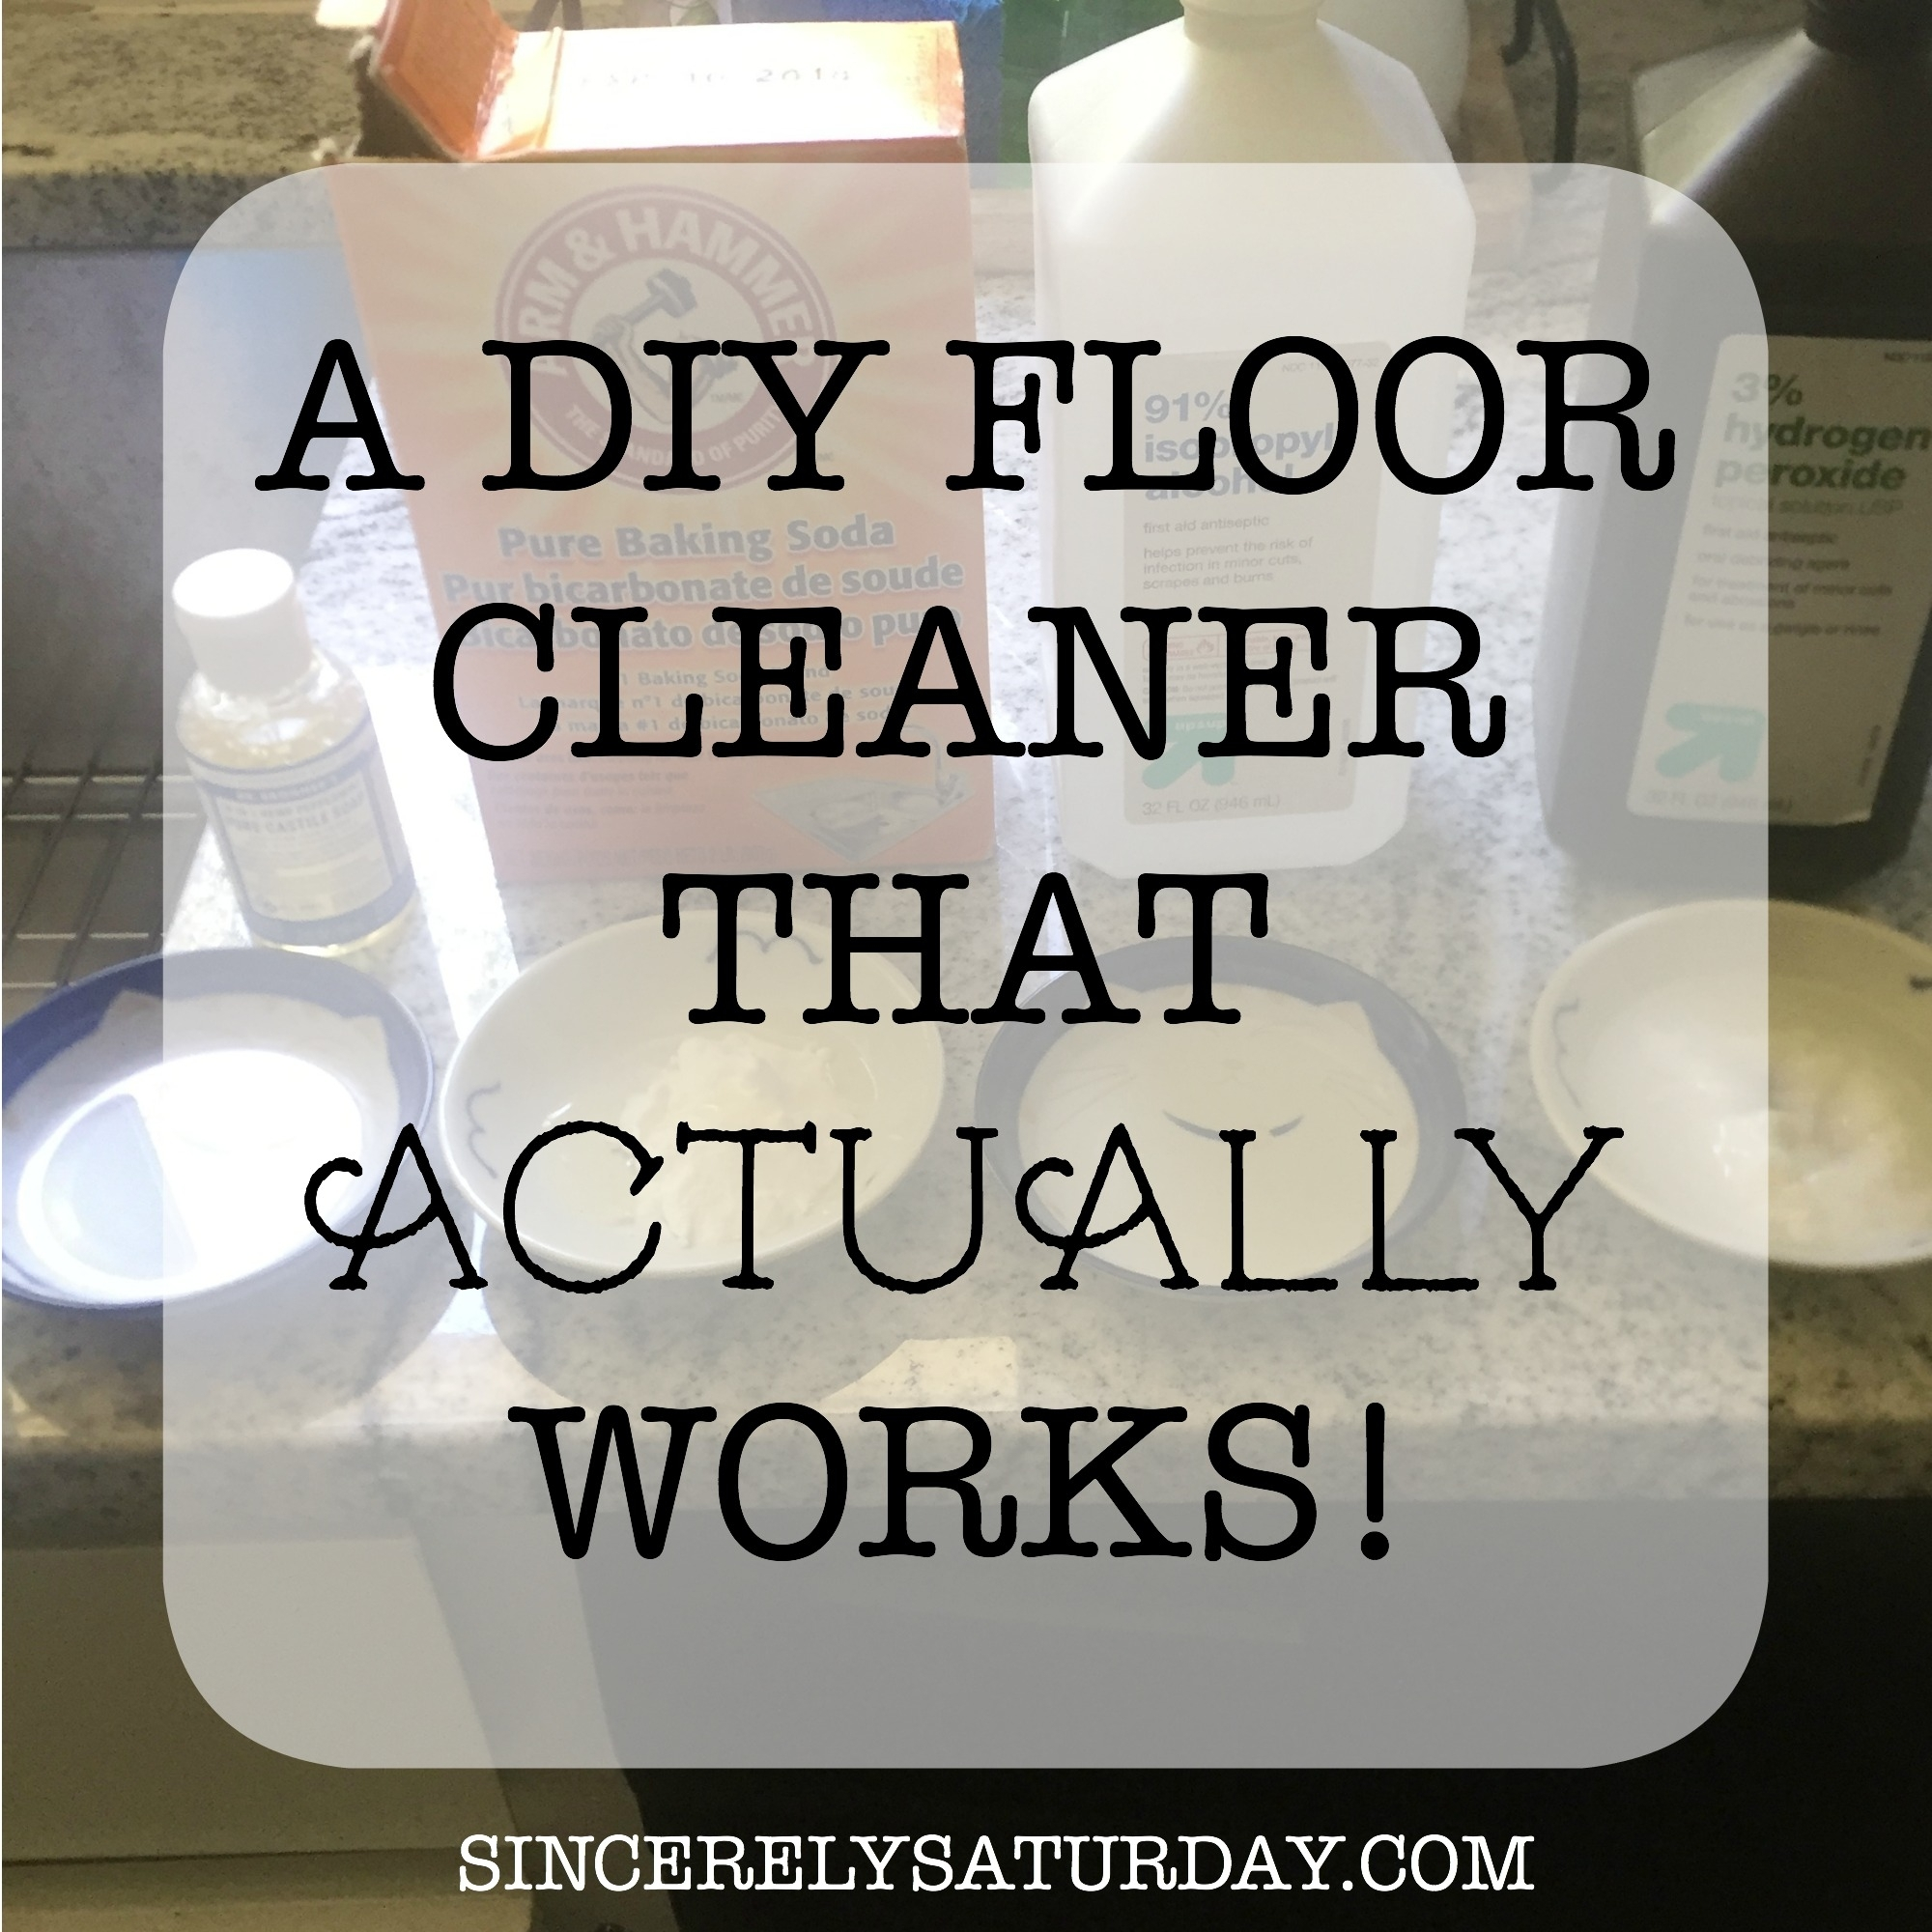 A DIY FLOOR CLEANER THAT ACTUALLY WORKS